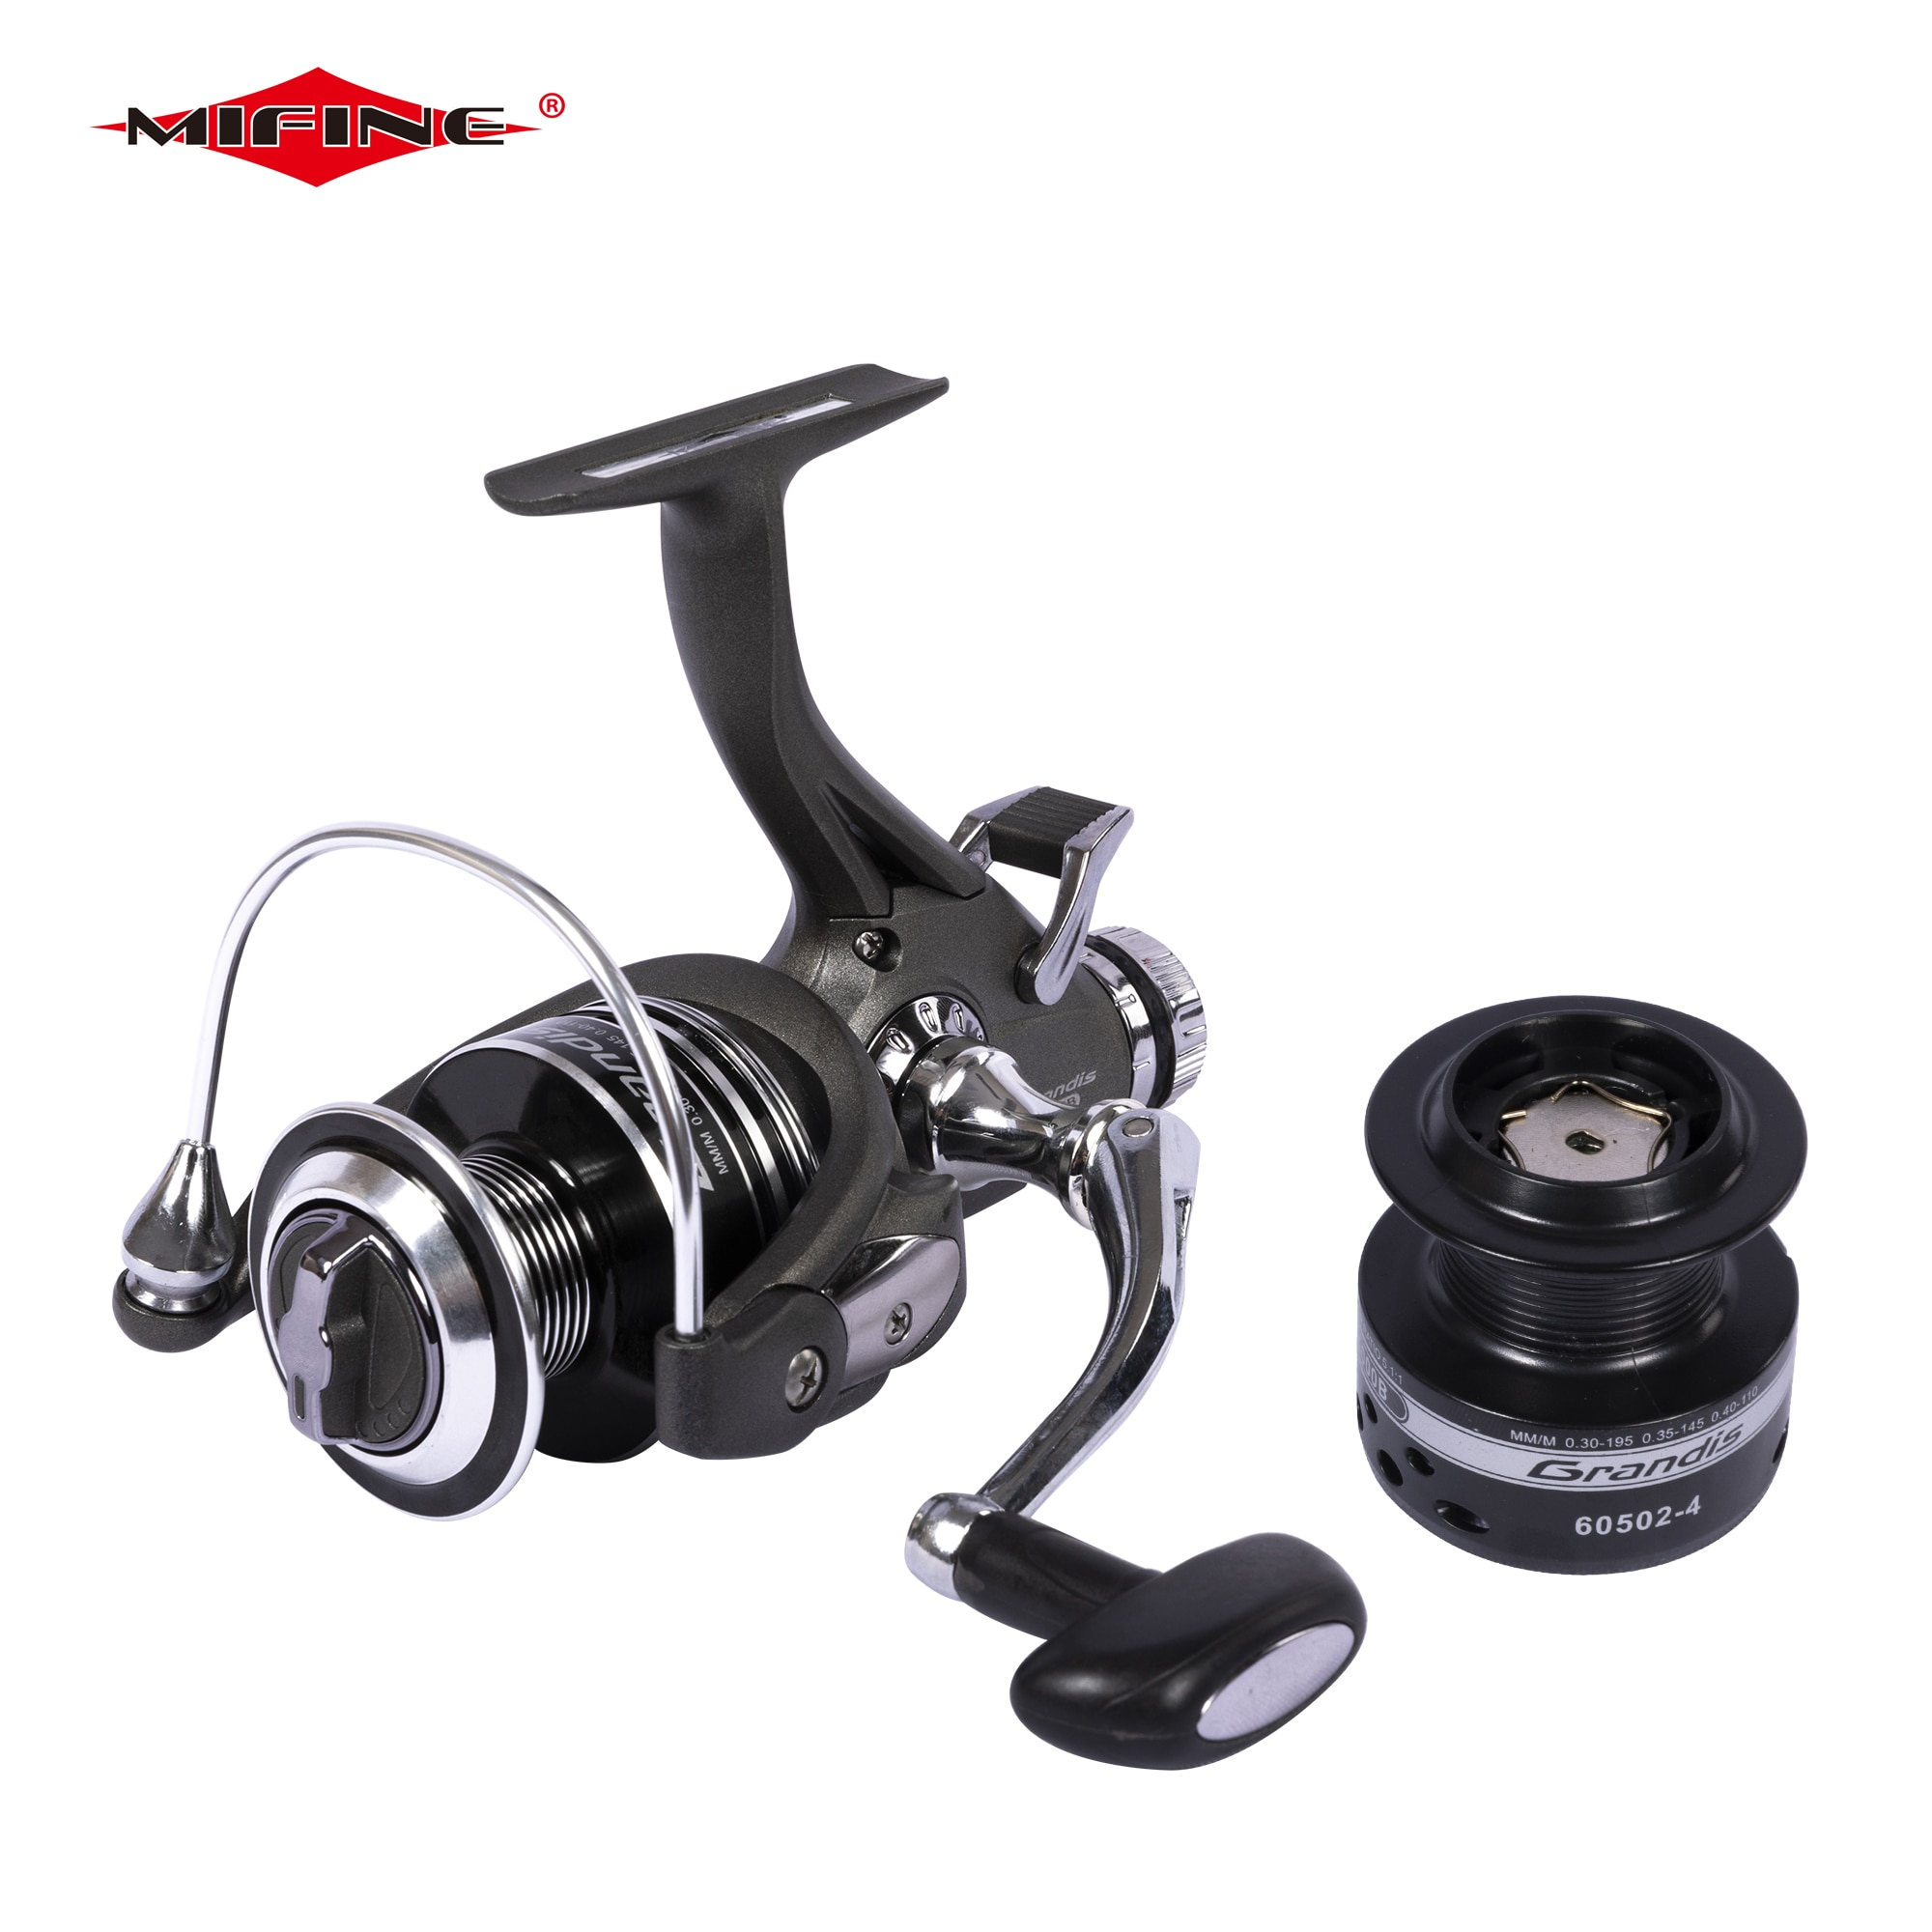 MIFINE Grandis Double Brake 10KG  Fishing Reel With Extra Spool Front Rear Drag System Gear Ratio 5.1:1 Carp Spinning Reel sougayilang carp fishing reel 13 1 bb spinning reel with free spool aluminum body 5 0 1 gear ratio fishing reel for carp fishing